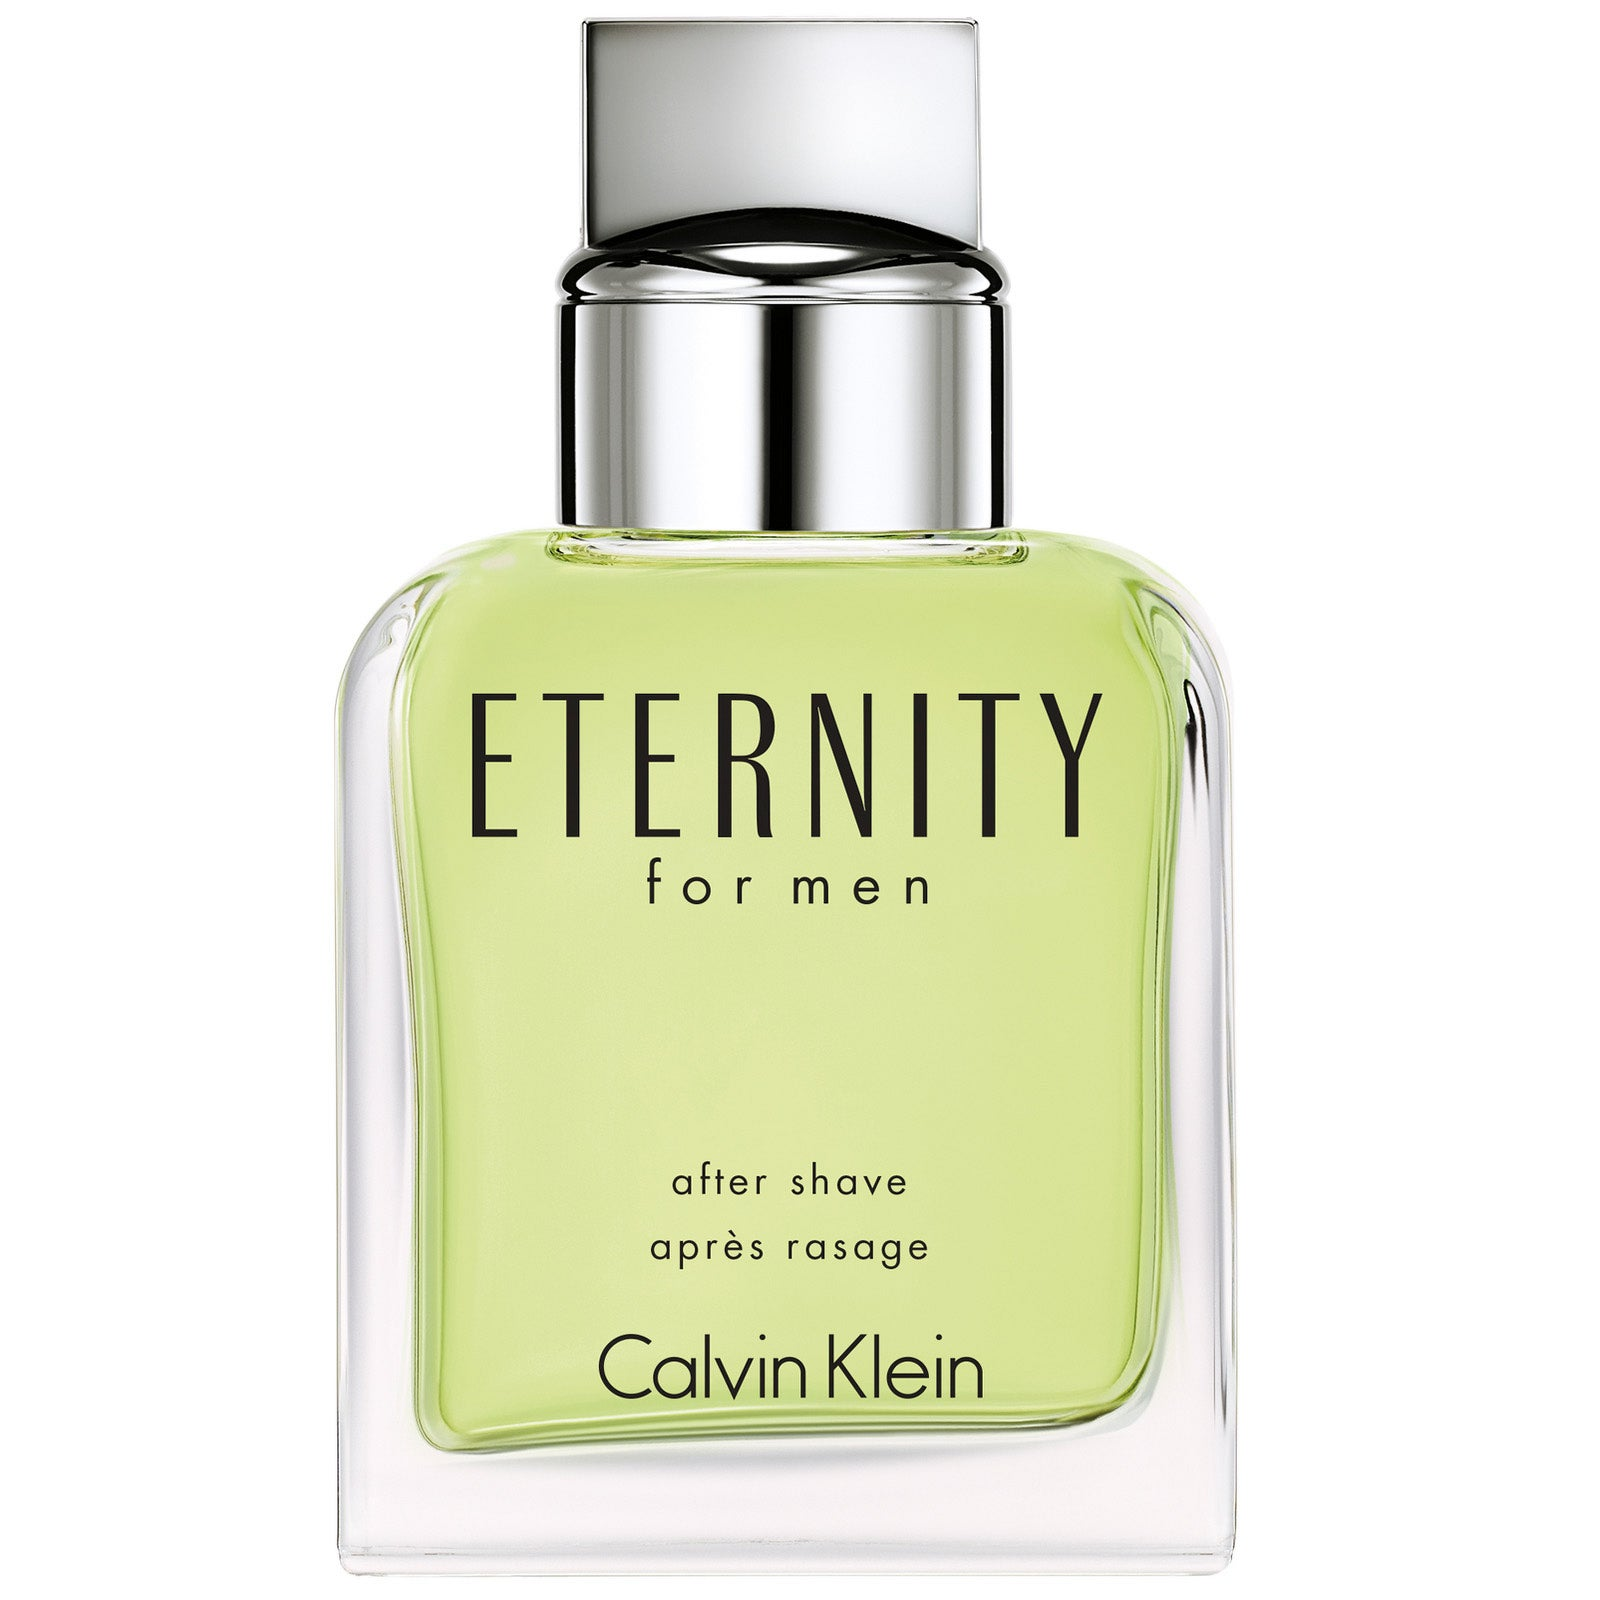 Calvin Klein Eternity Aftershave 100ml Splash, Shaving & Grooming by Low Cost Gifts